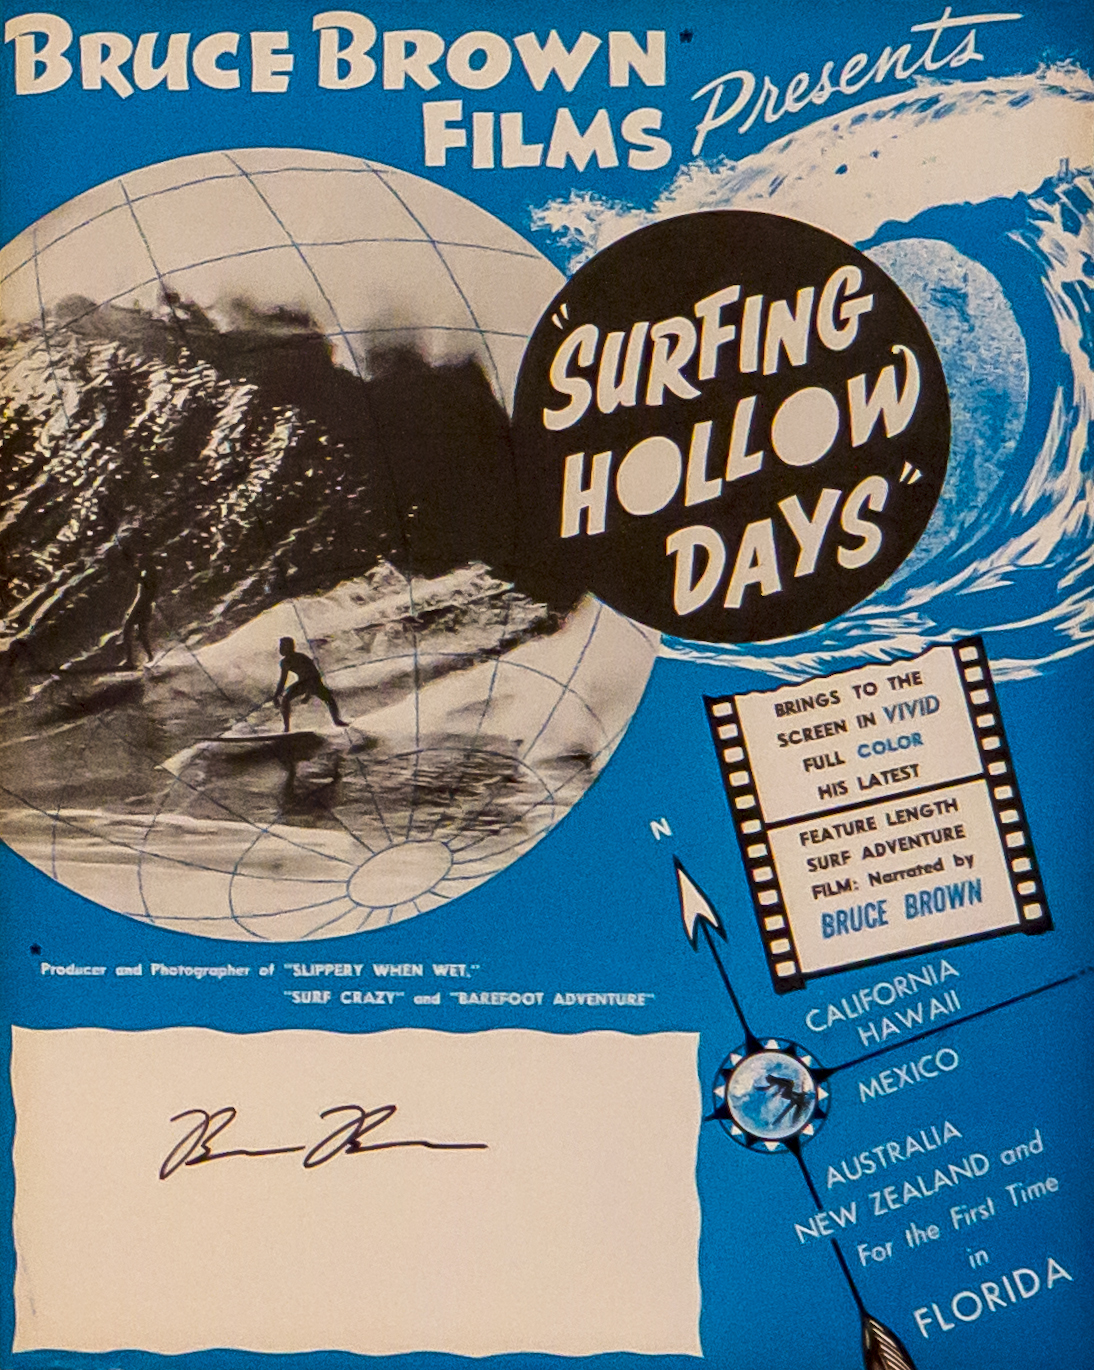 62SurfingHollowDays6